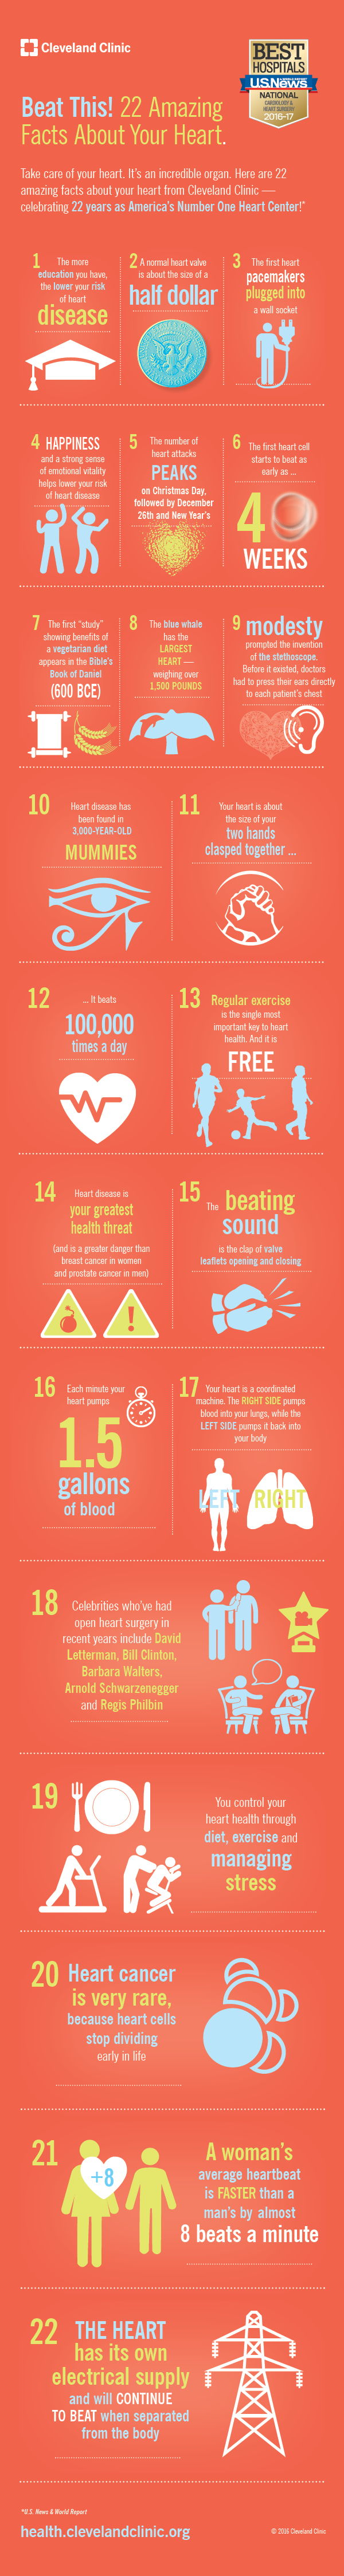 surprising facts heart health infographic